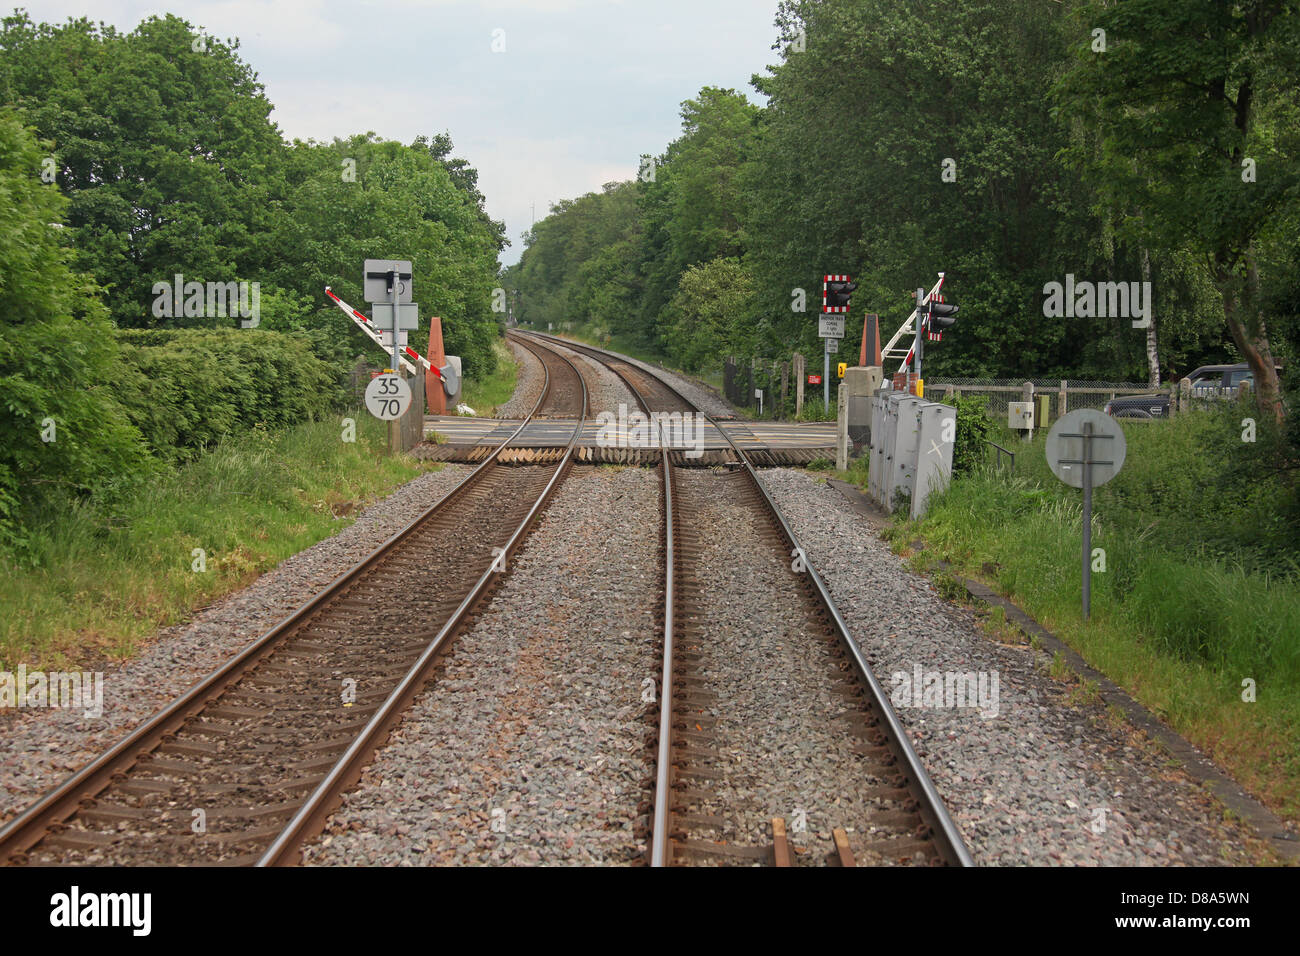 An Automatic Half Barrier Road Level crossing at Tangley Lane to the south of Guildford, on a very busy line. - Stock Image